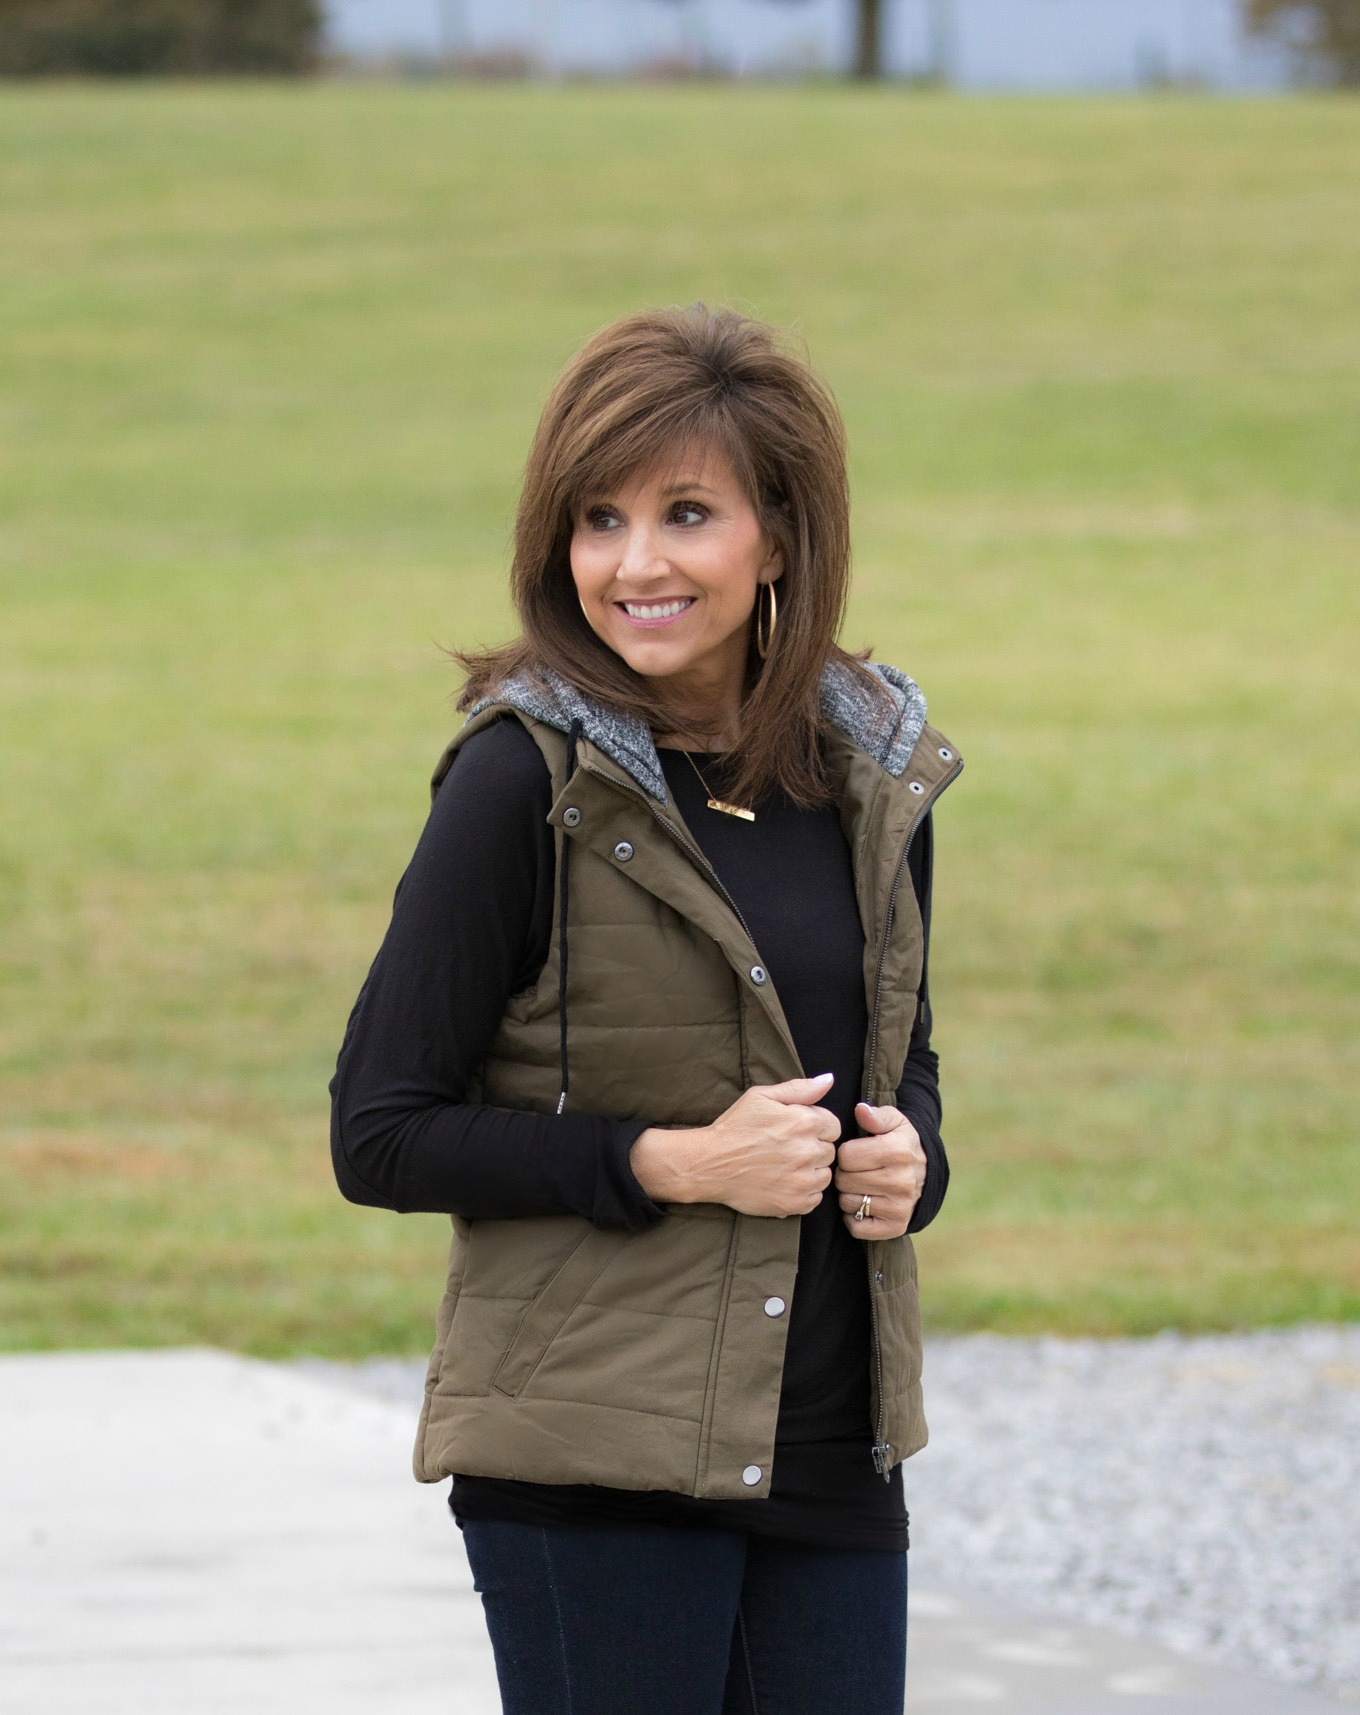 Fashion blogger, Cyndi Spivey, styling a hooded vest for fall.